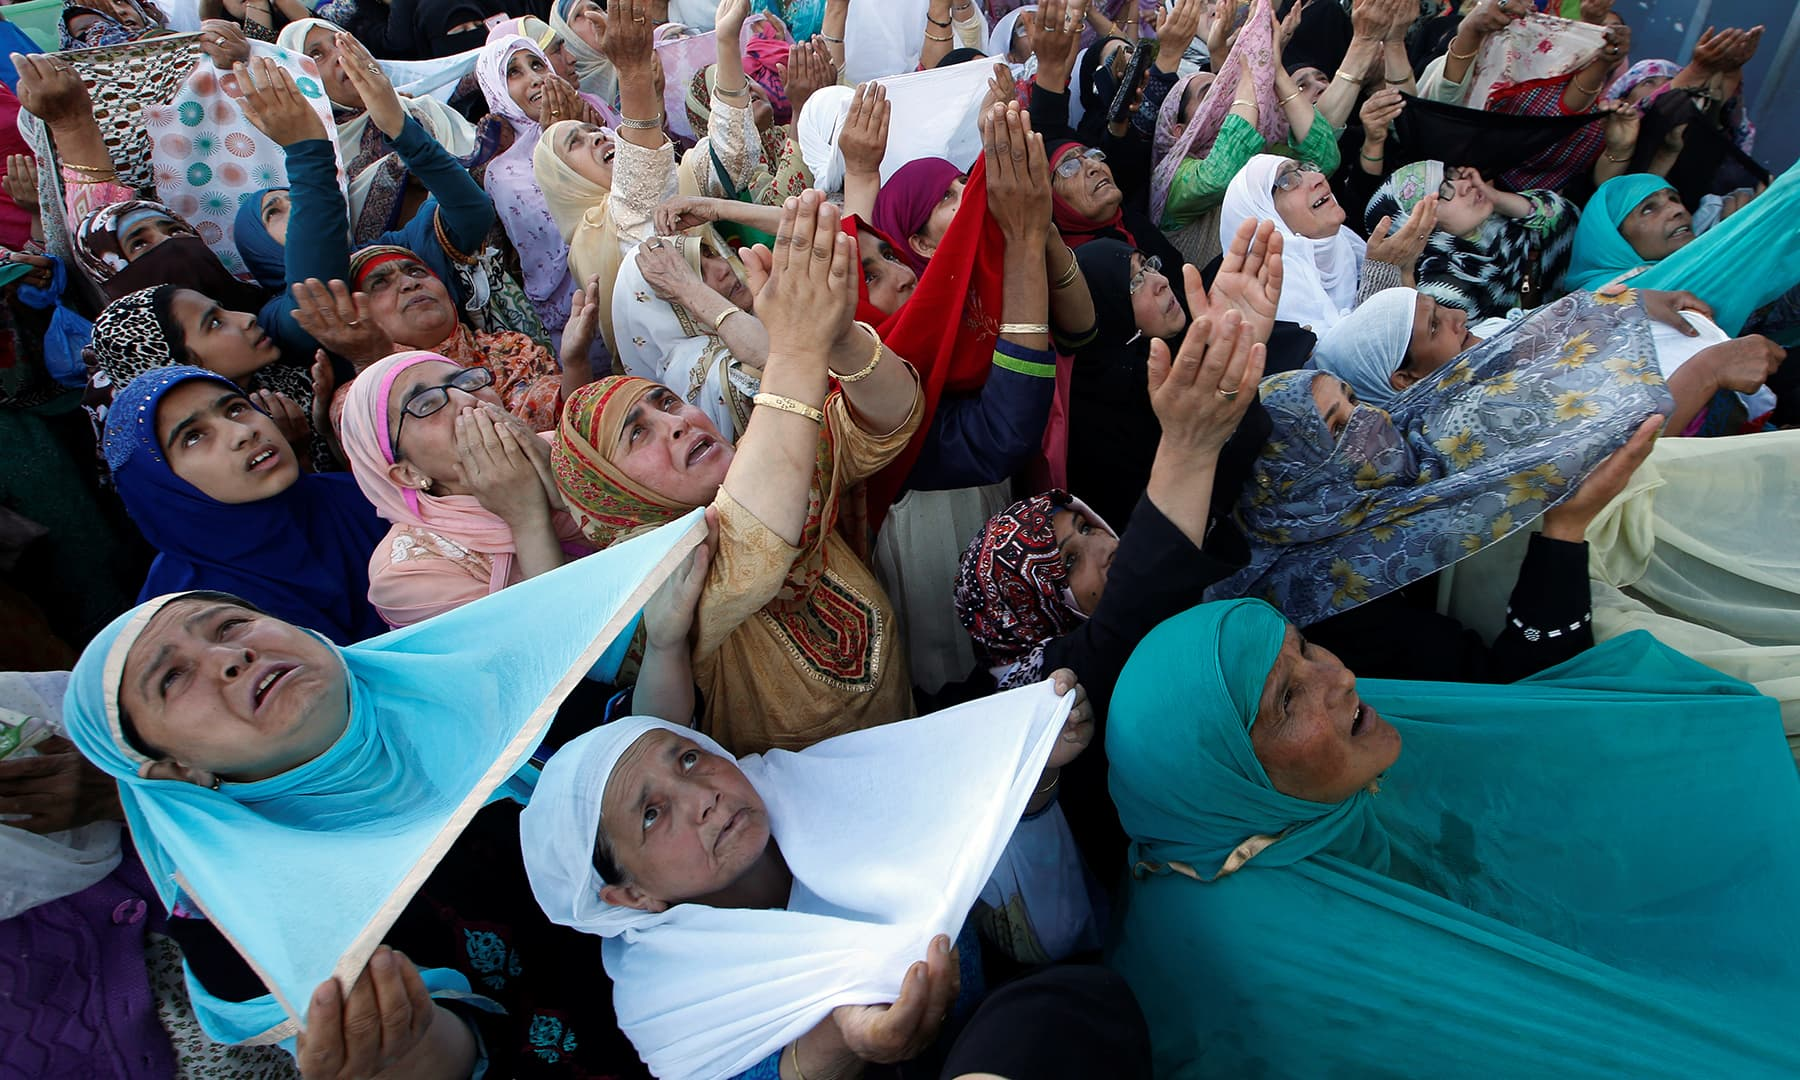 Muslim women react upon seeing a relic, believed to be a hair from the beard of Prophet Muhammad (PBUH), displayed to devotees on the death anniversary of Hazrat Ali at Hazratbal shrine in Srinagar. — Reuters